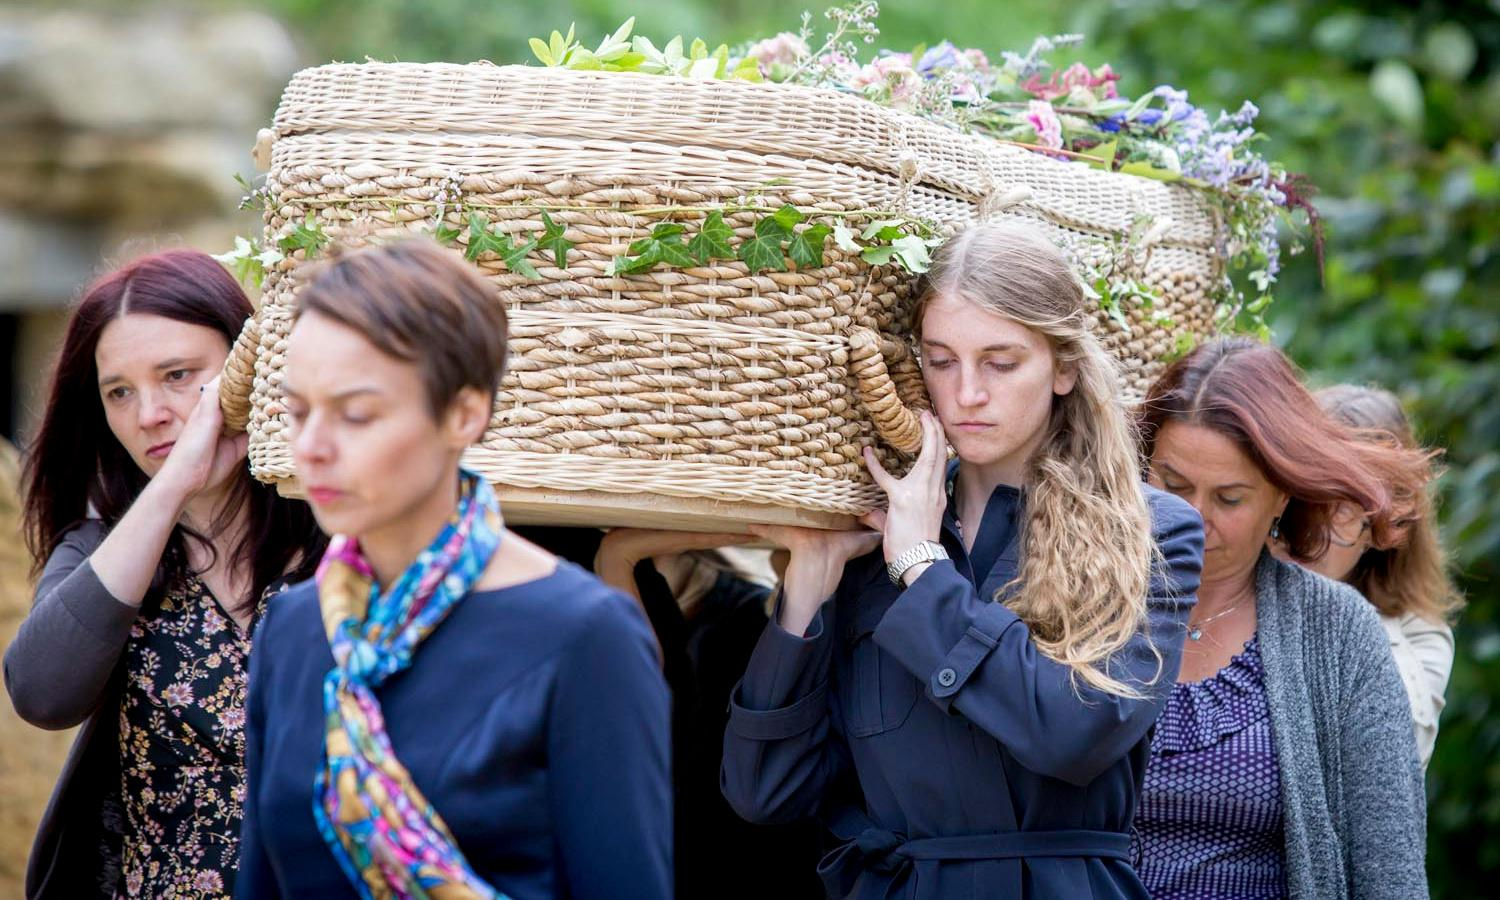 Forget the rules, there are meaningful ways to bury spiralling funeral costs